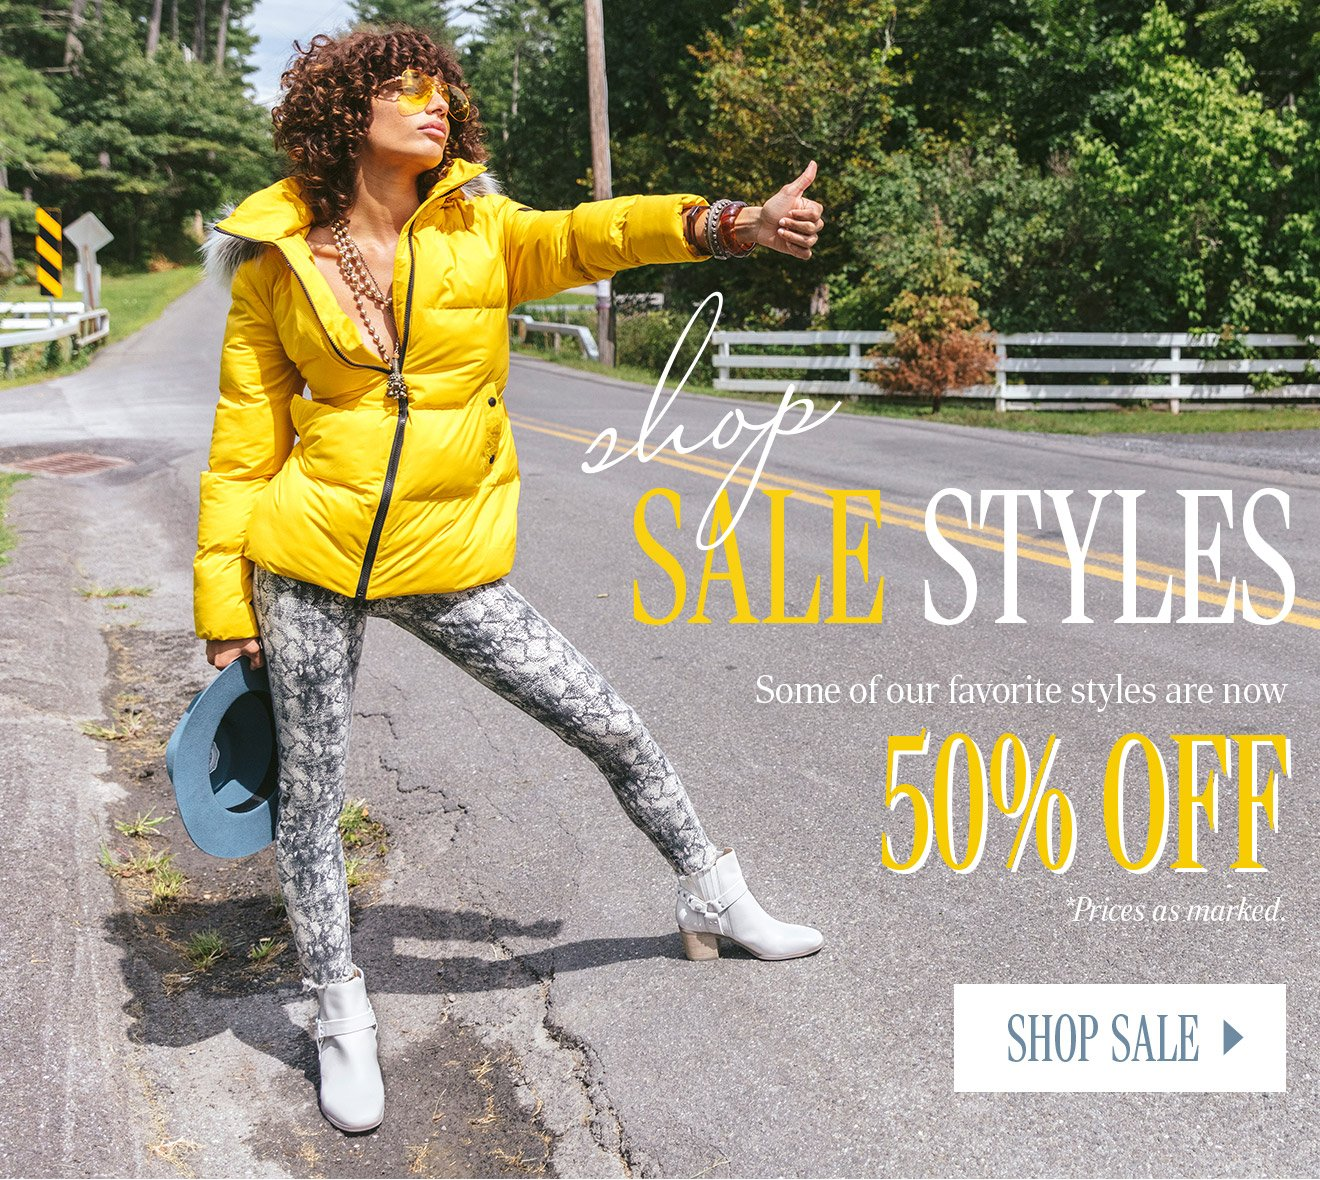 SHOP SALE STYLES. Some of our favorite styles are now 50% OFF. * Prices as marked. SHOP SALE.